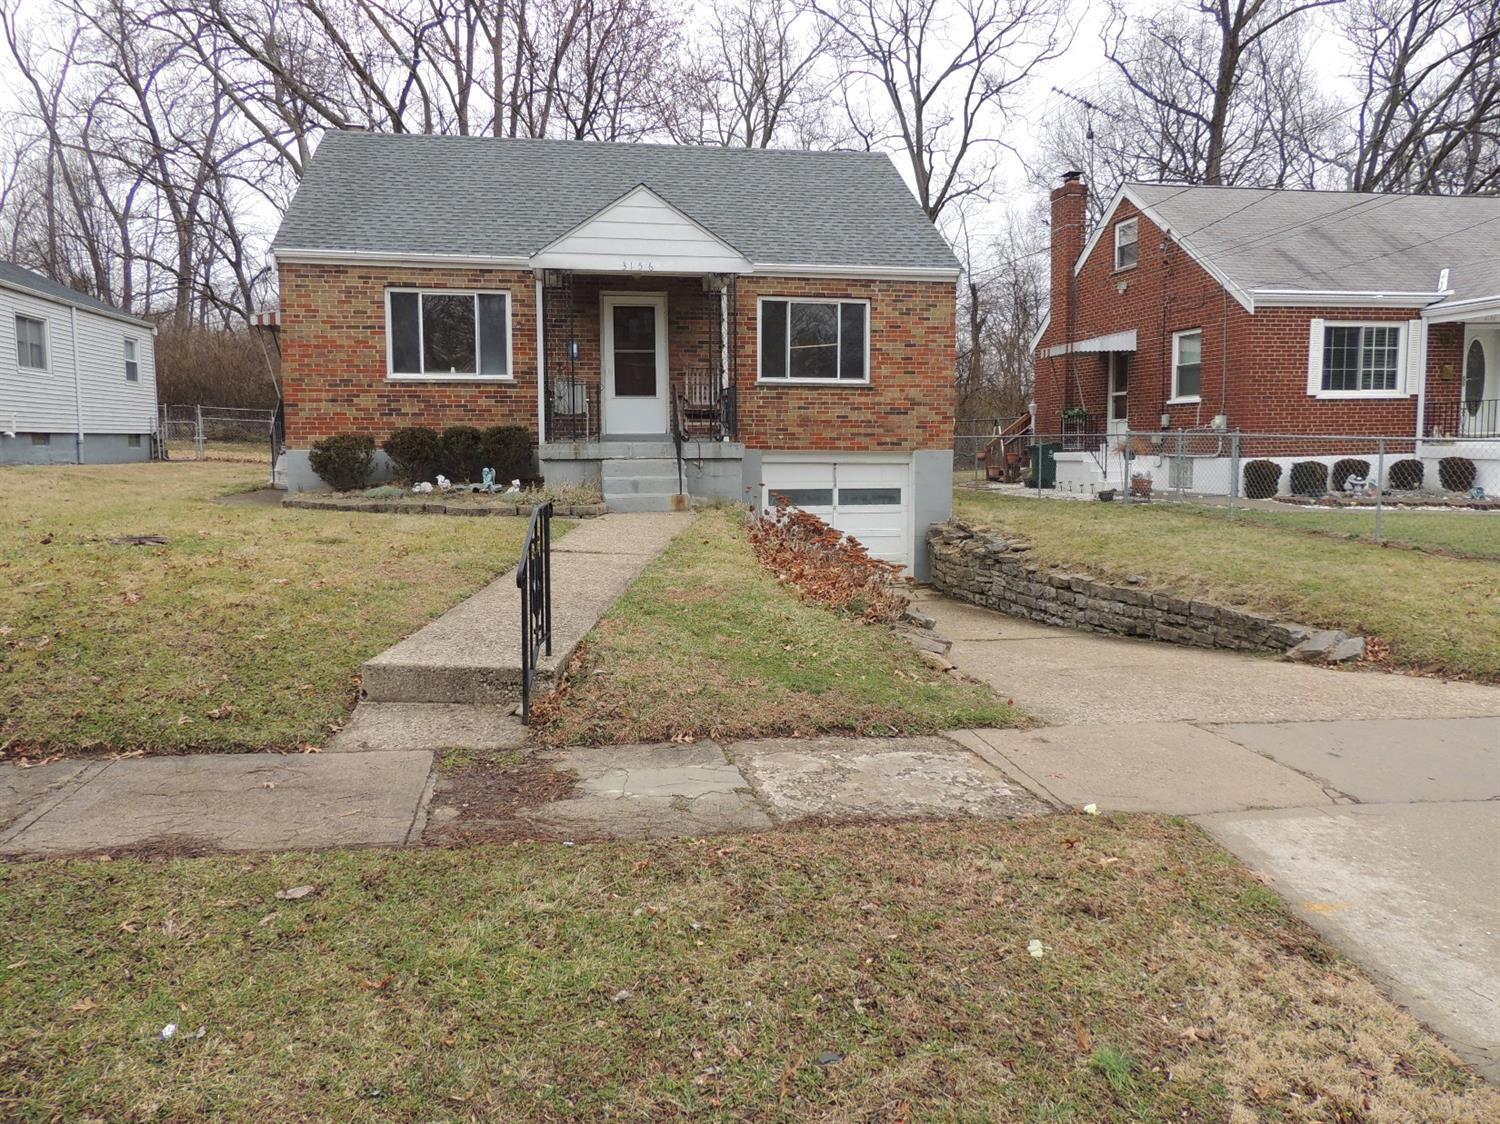 3156 West Tower Ave Westwood Oh 45238 Listing Details